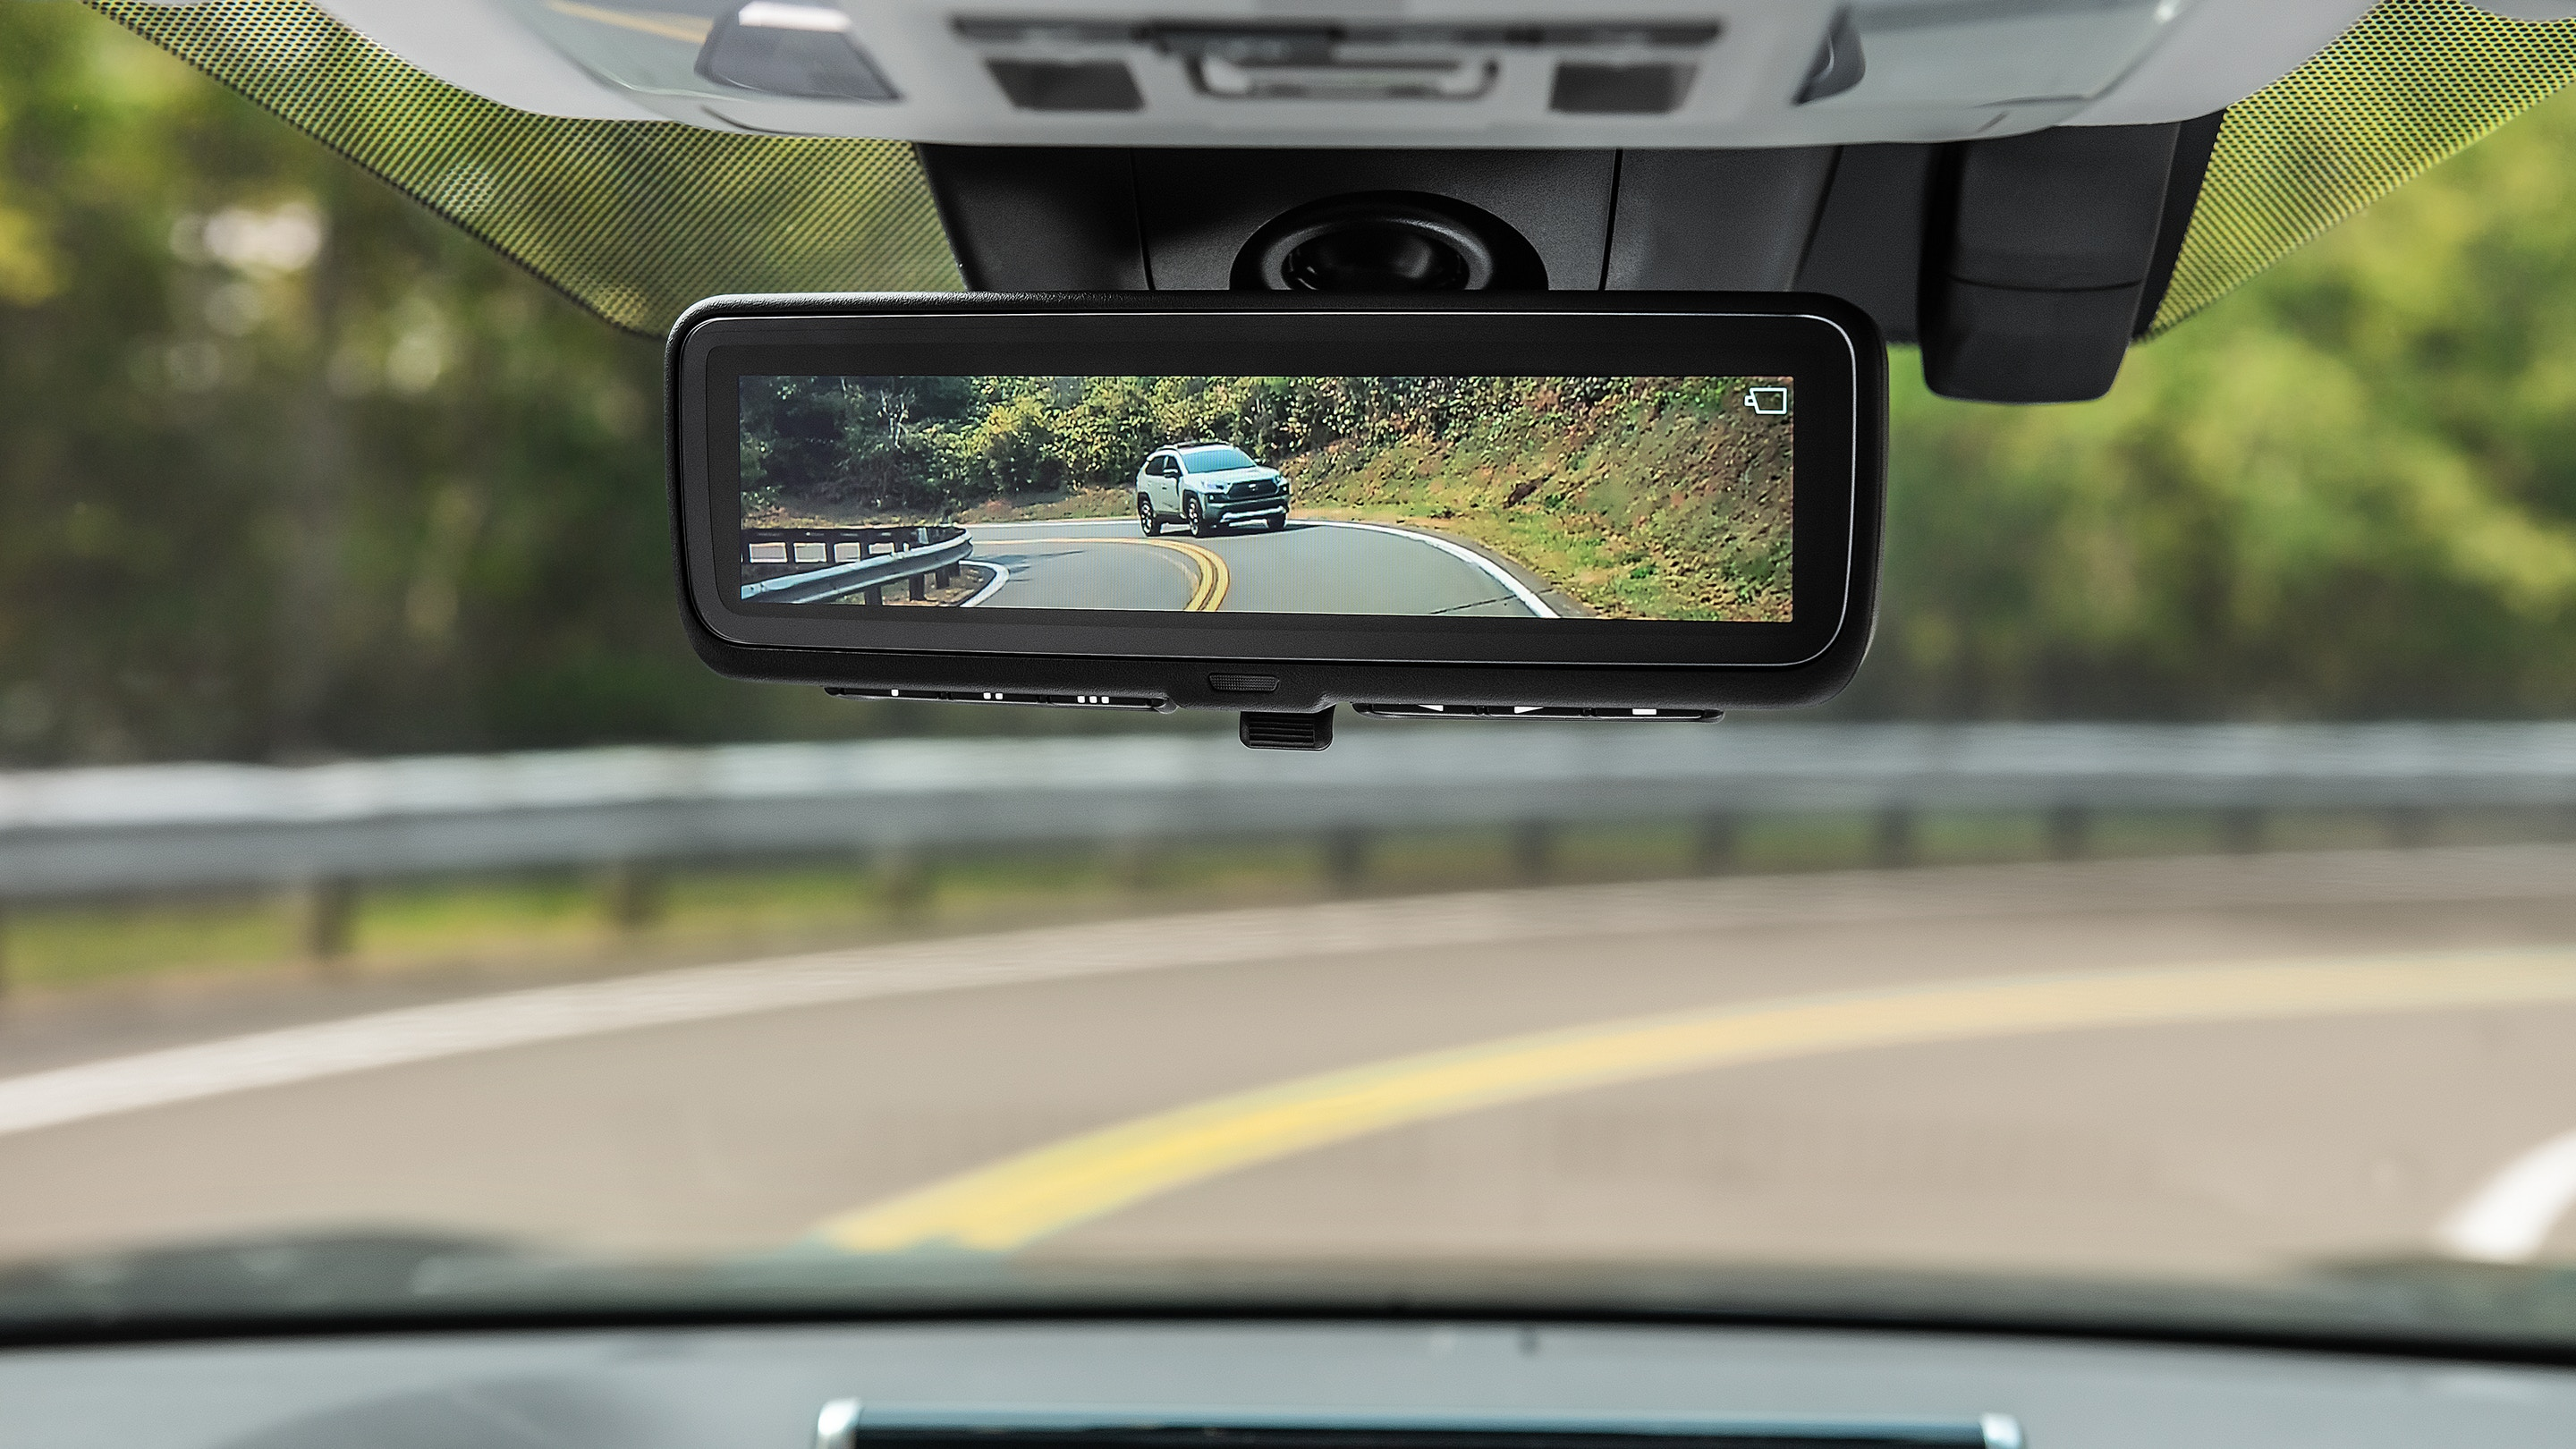 2019 Toyota RAV4 Rear View Mirror